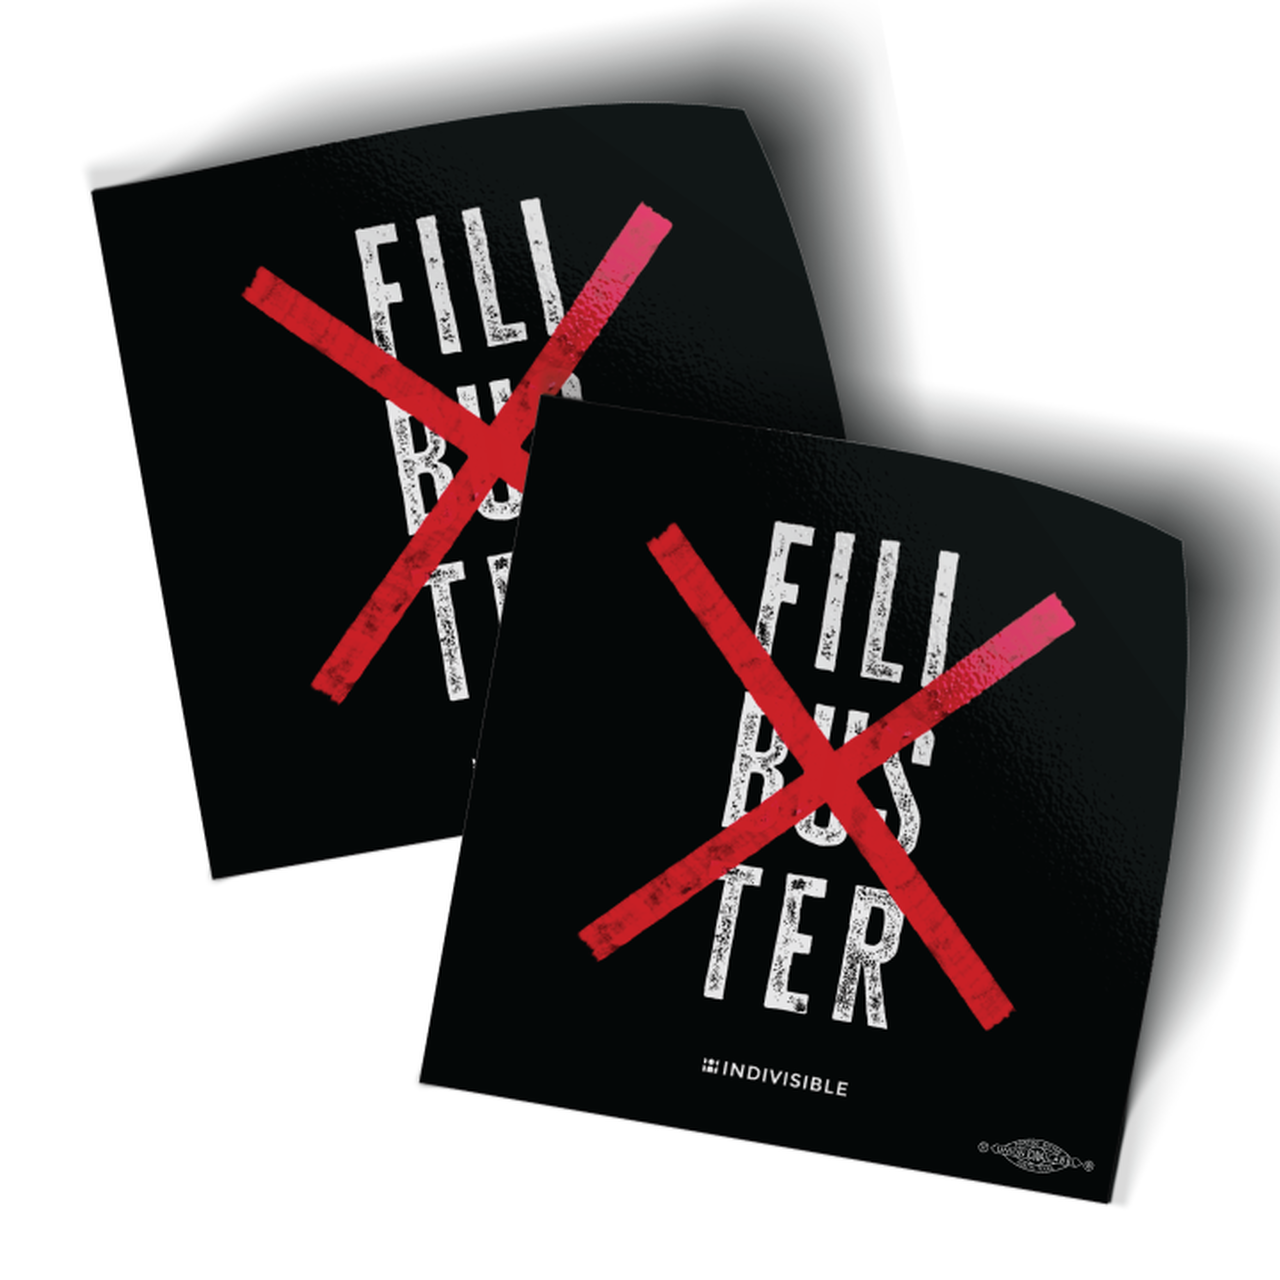 Pair of No Filibuster stickers with r x's